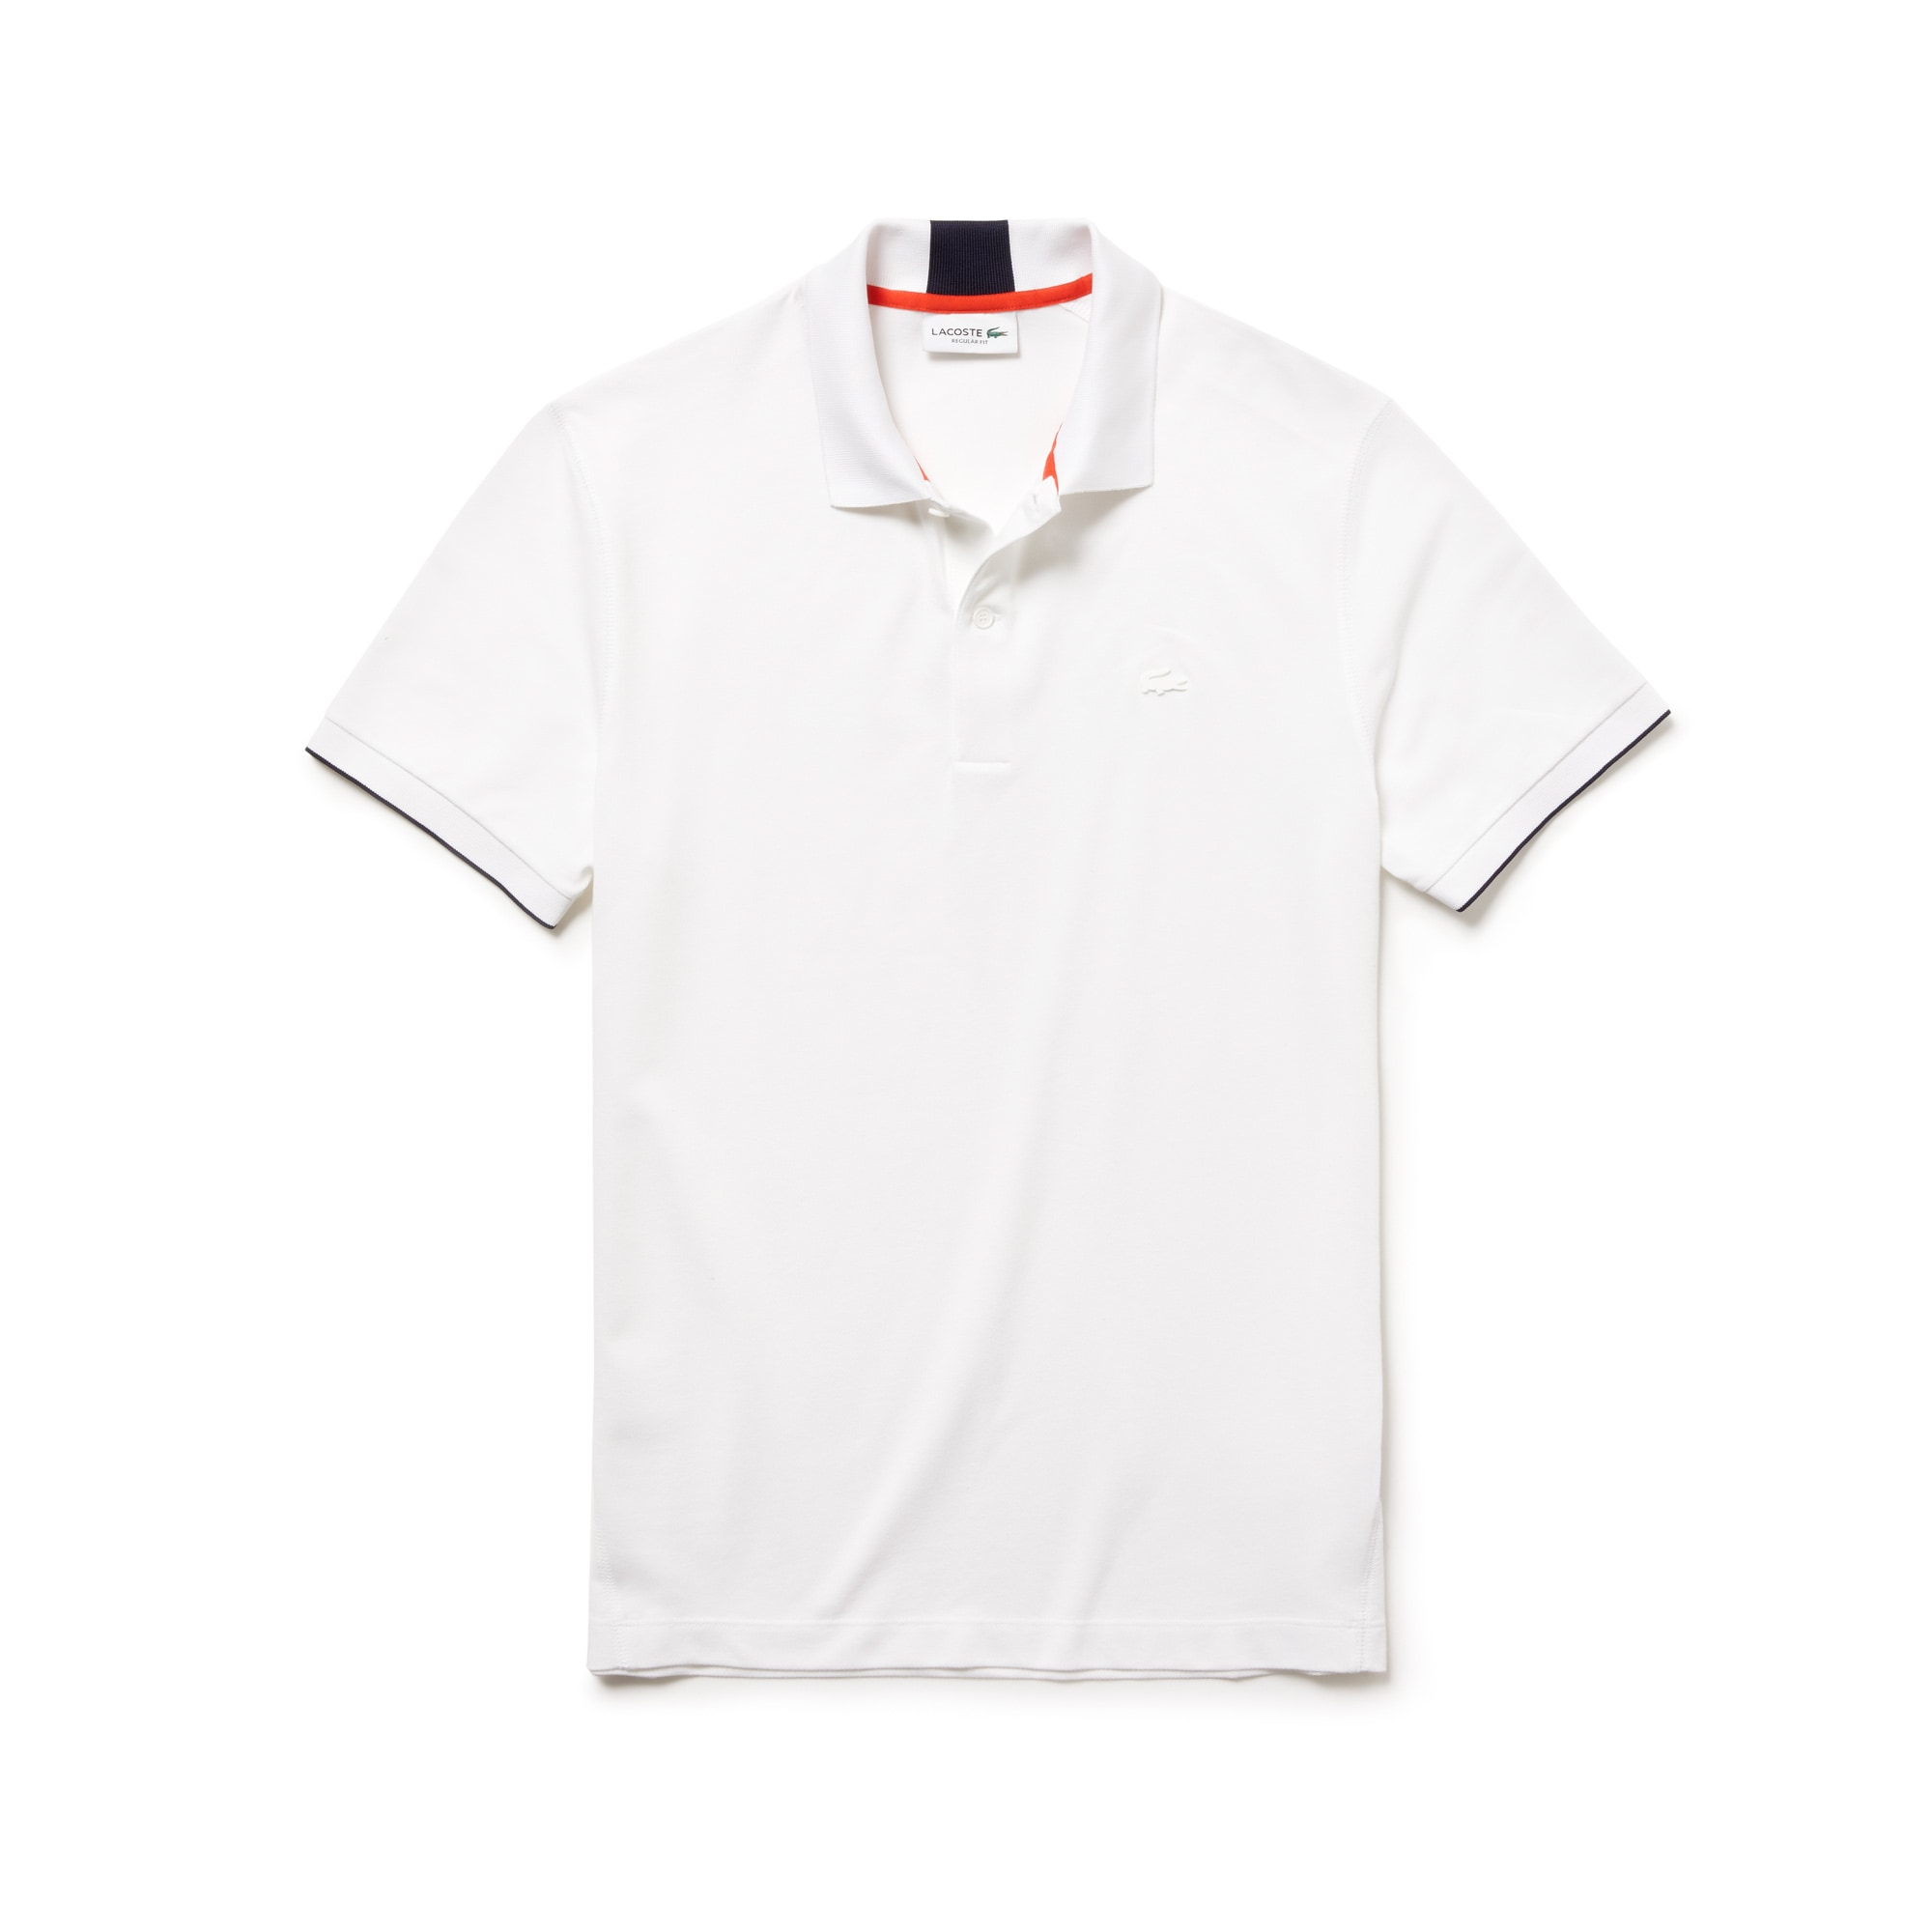 라코스테 Lacoste Mens Motion Regular Fit Technical Petit Pique Polo,white/navy blue-pomegrena